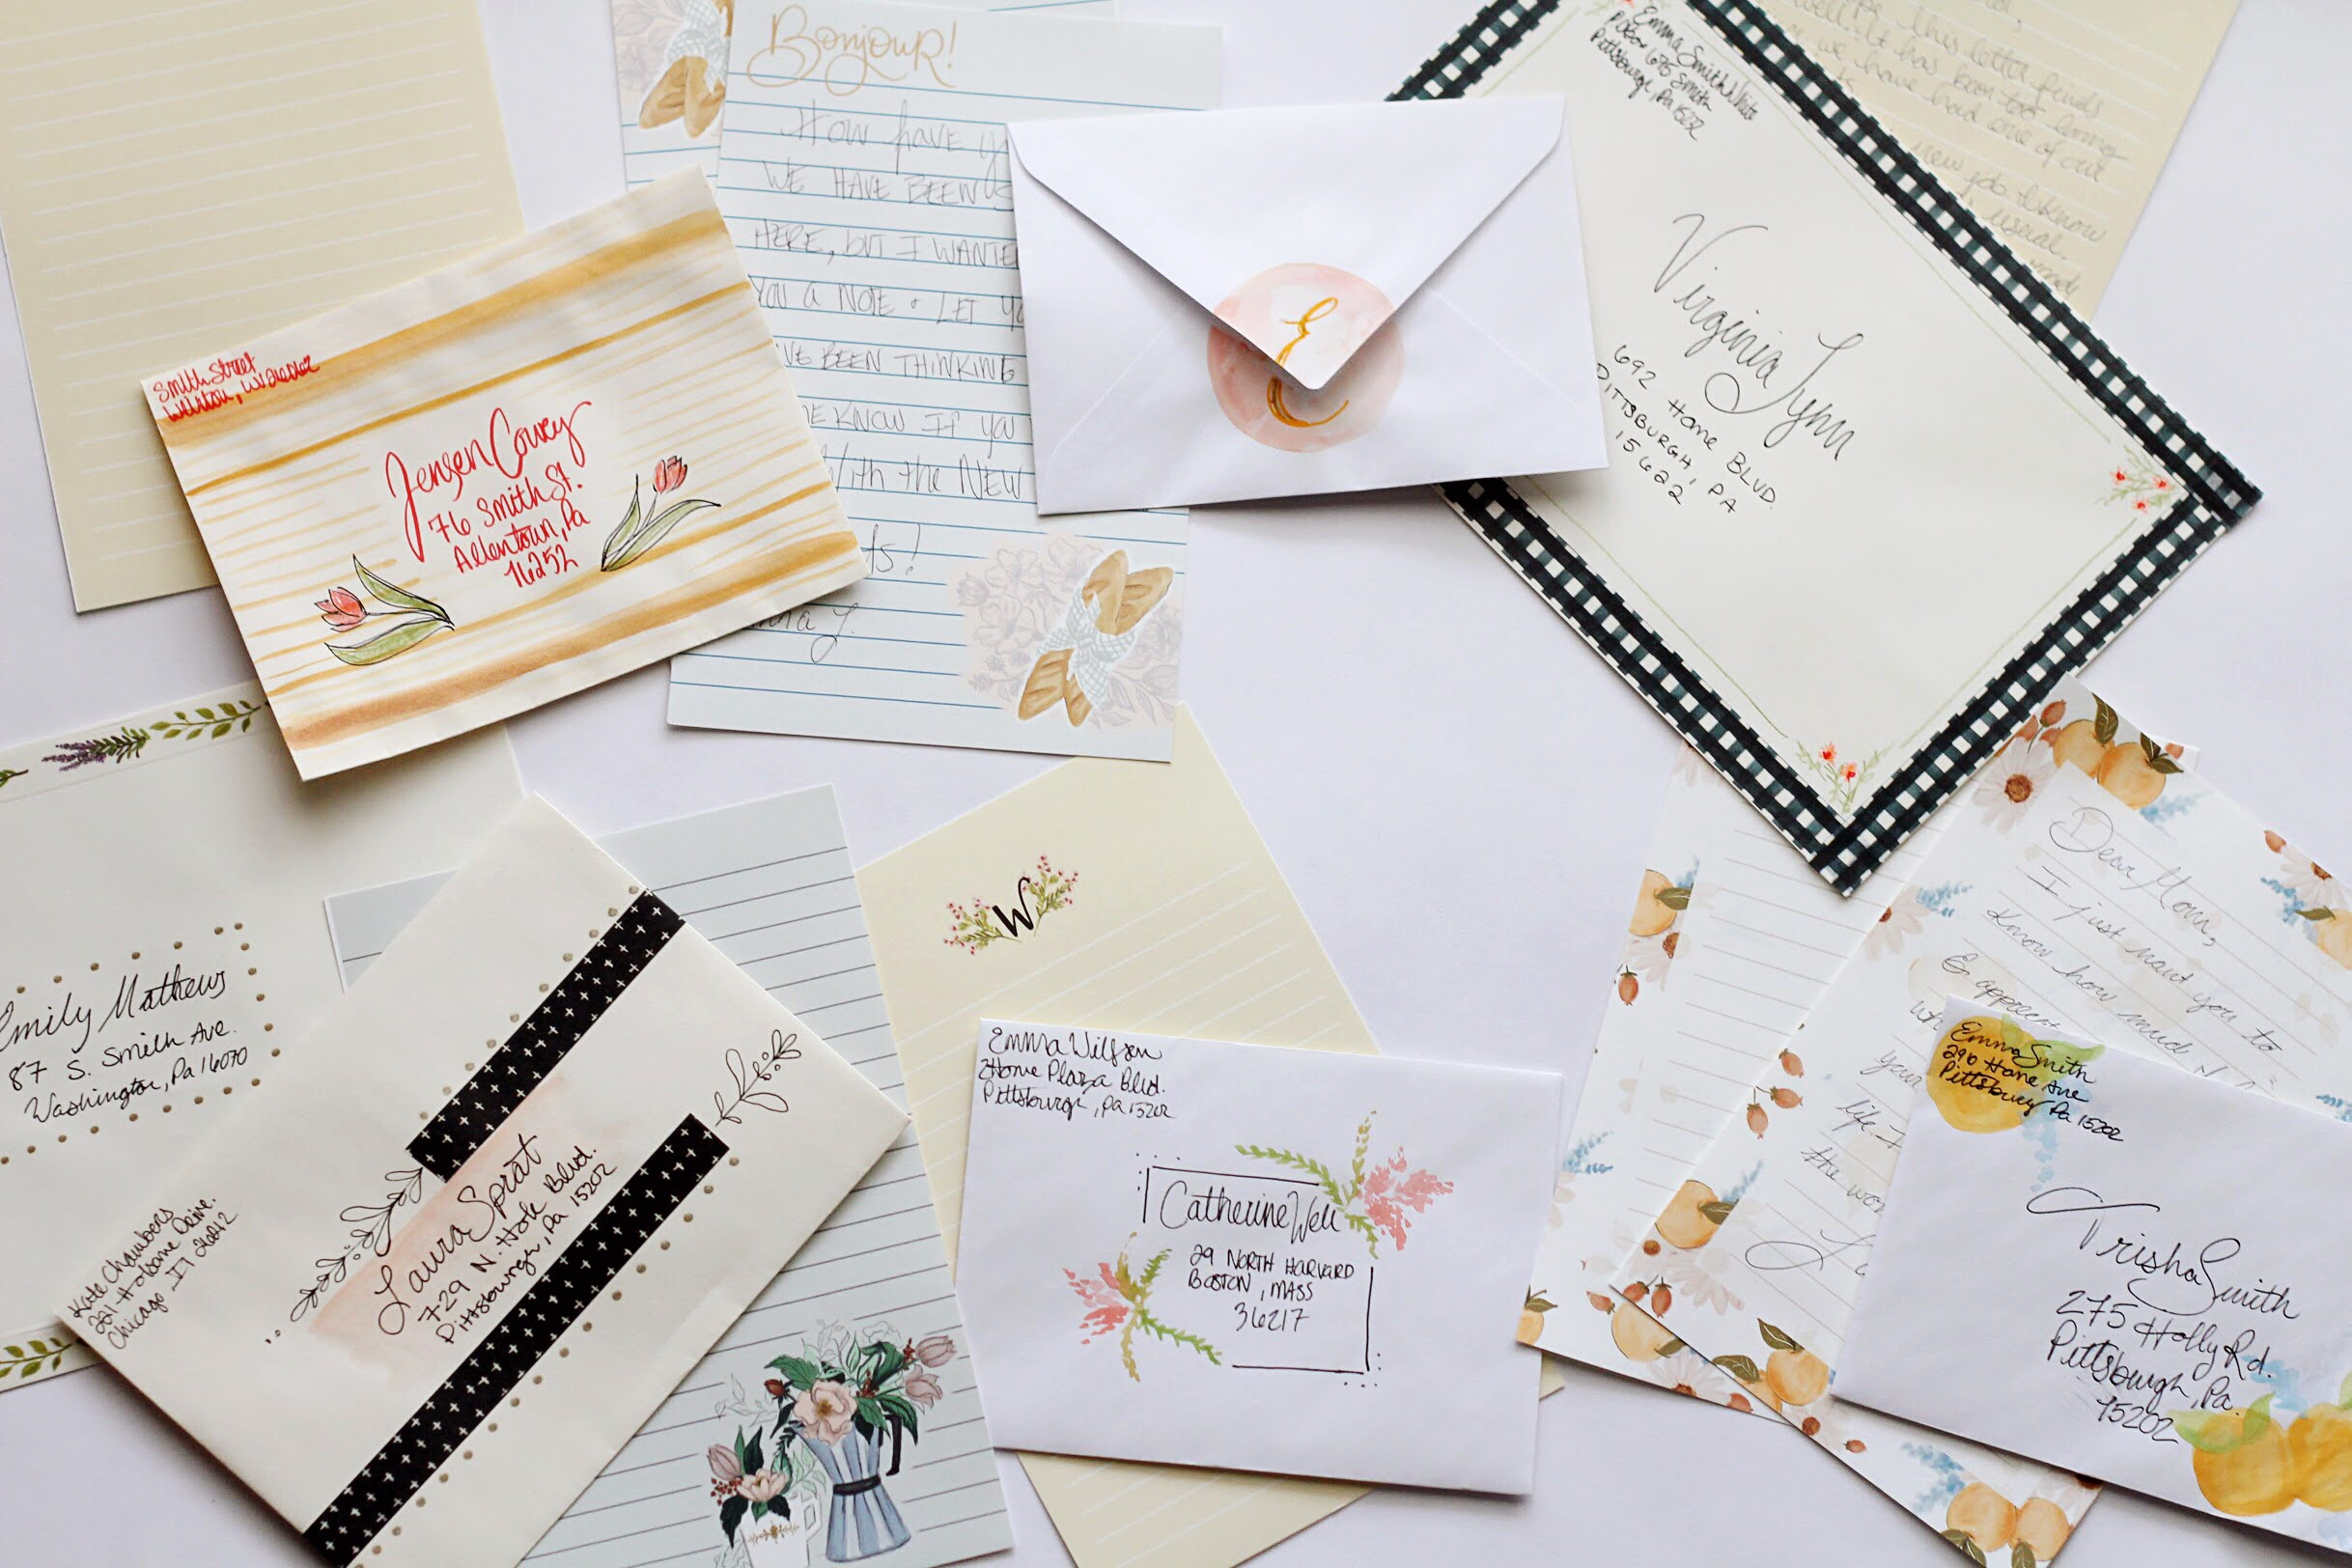 Decorating Envelopes to Match stationery sheets